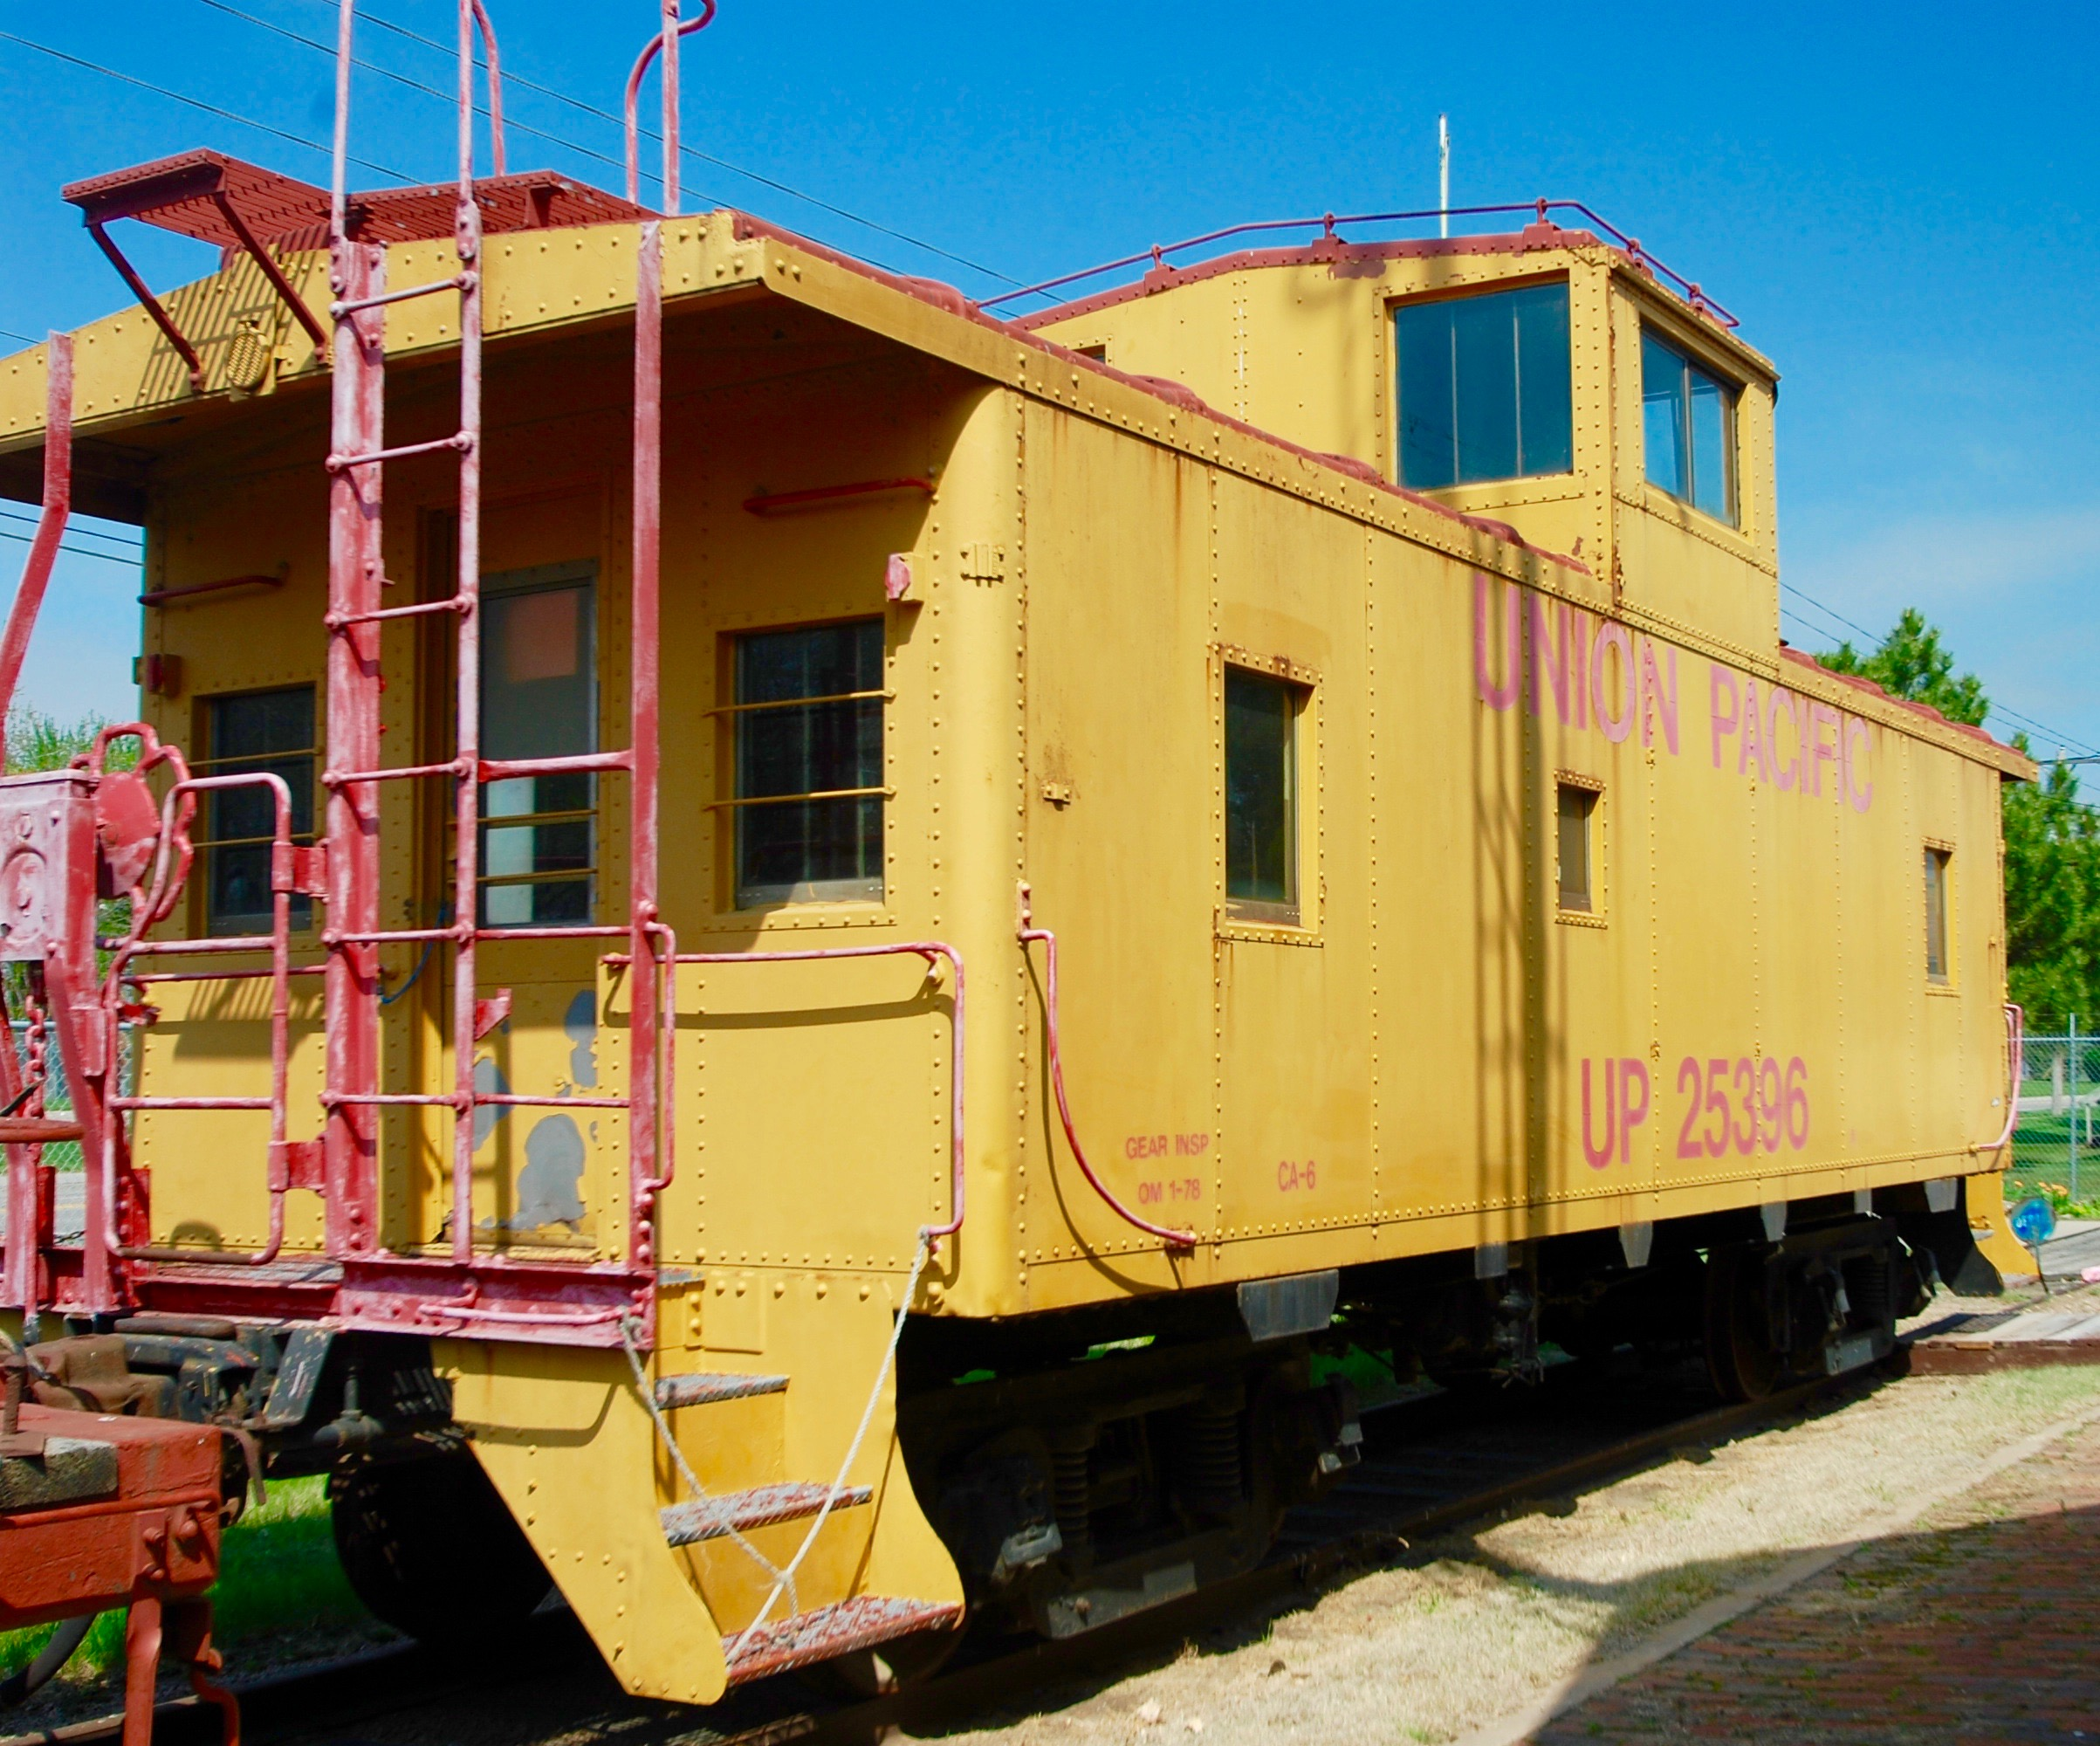 The caboose currently at the Trails and Rails Museum.